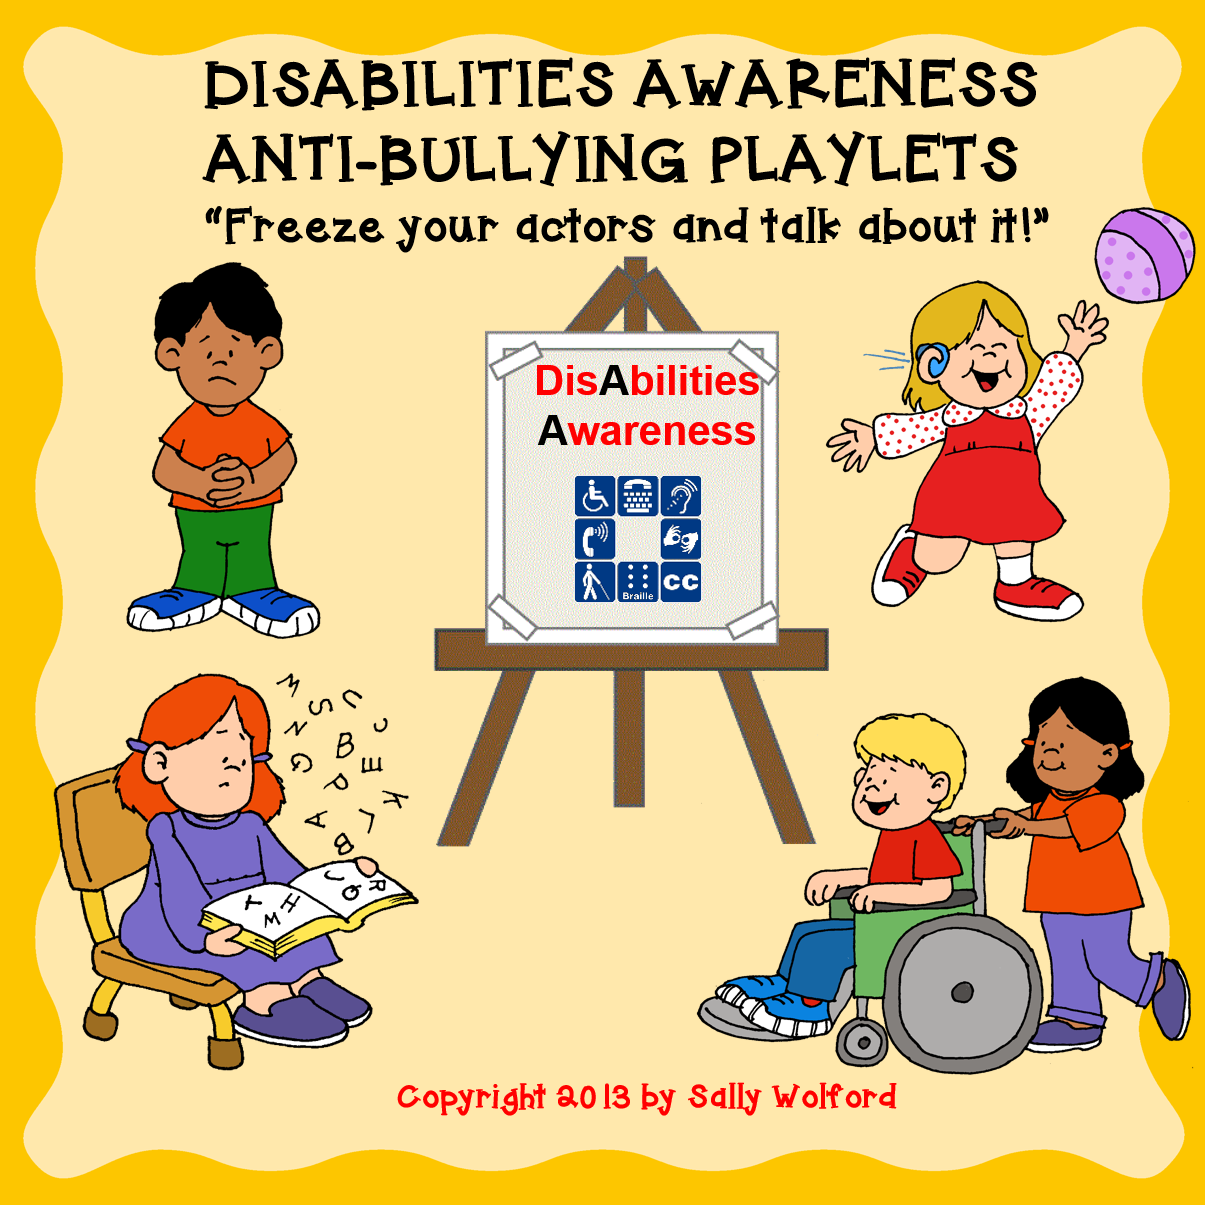 Disability Awareness Playlets